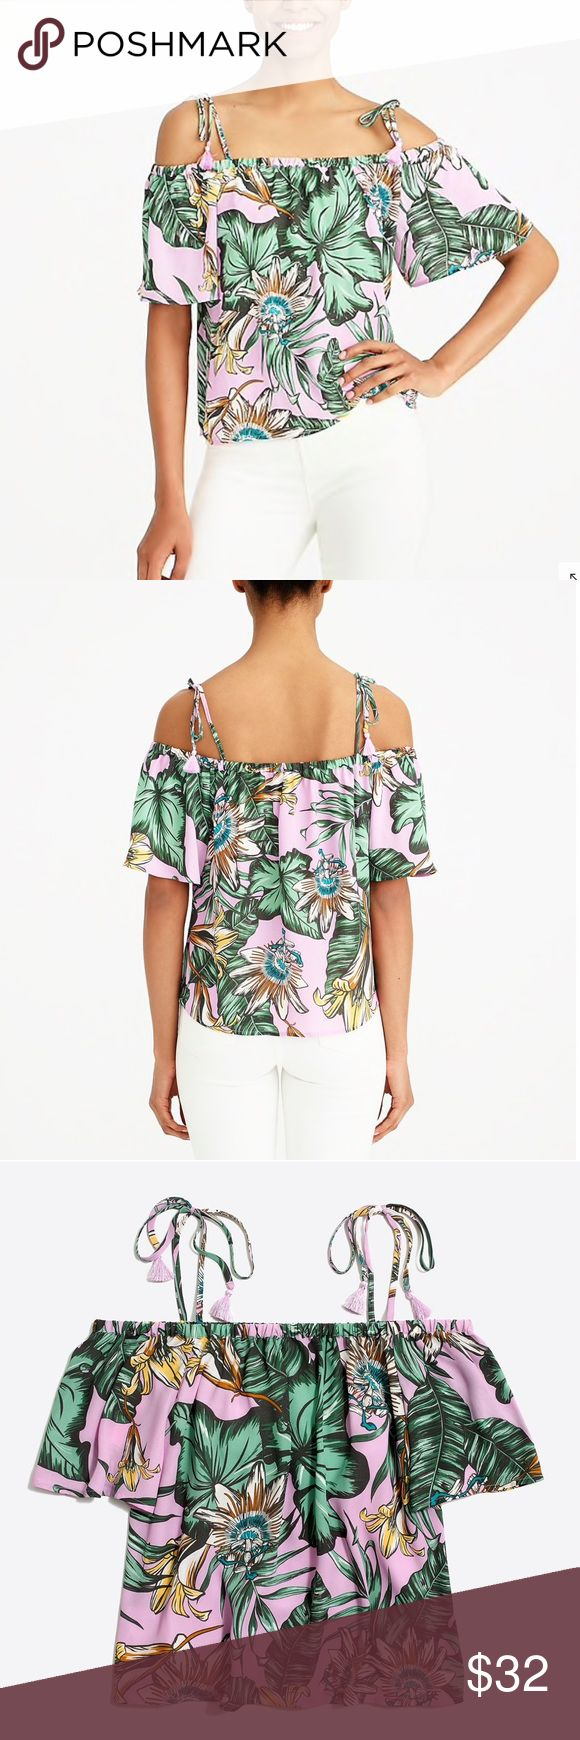 841ad115ef6c6 💚🖤NWT J. Crew Tie Cold-Shoulder Blouse ⬇  30 NWT-IN ORIGINAL  PACKAGING-PERFECT CONDITION J. Crew Smoky Lilac Tie Cold Shoulder Blouse  Various Sizes 100% ...